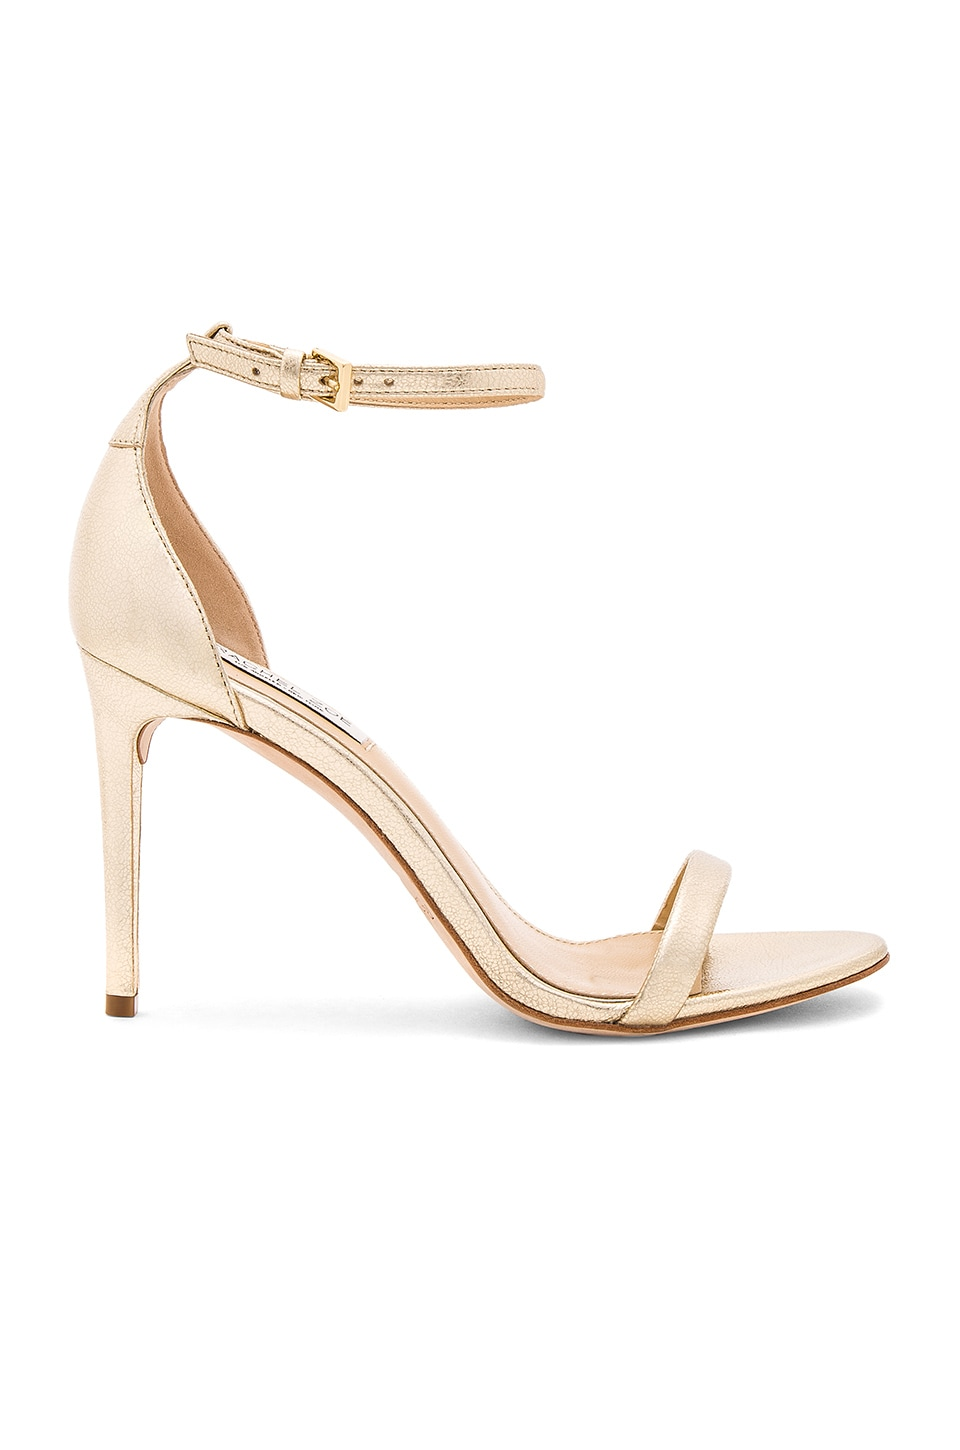 RACHEL ZOE Ema Heel in Light Gold